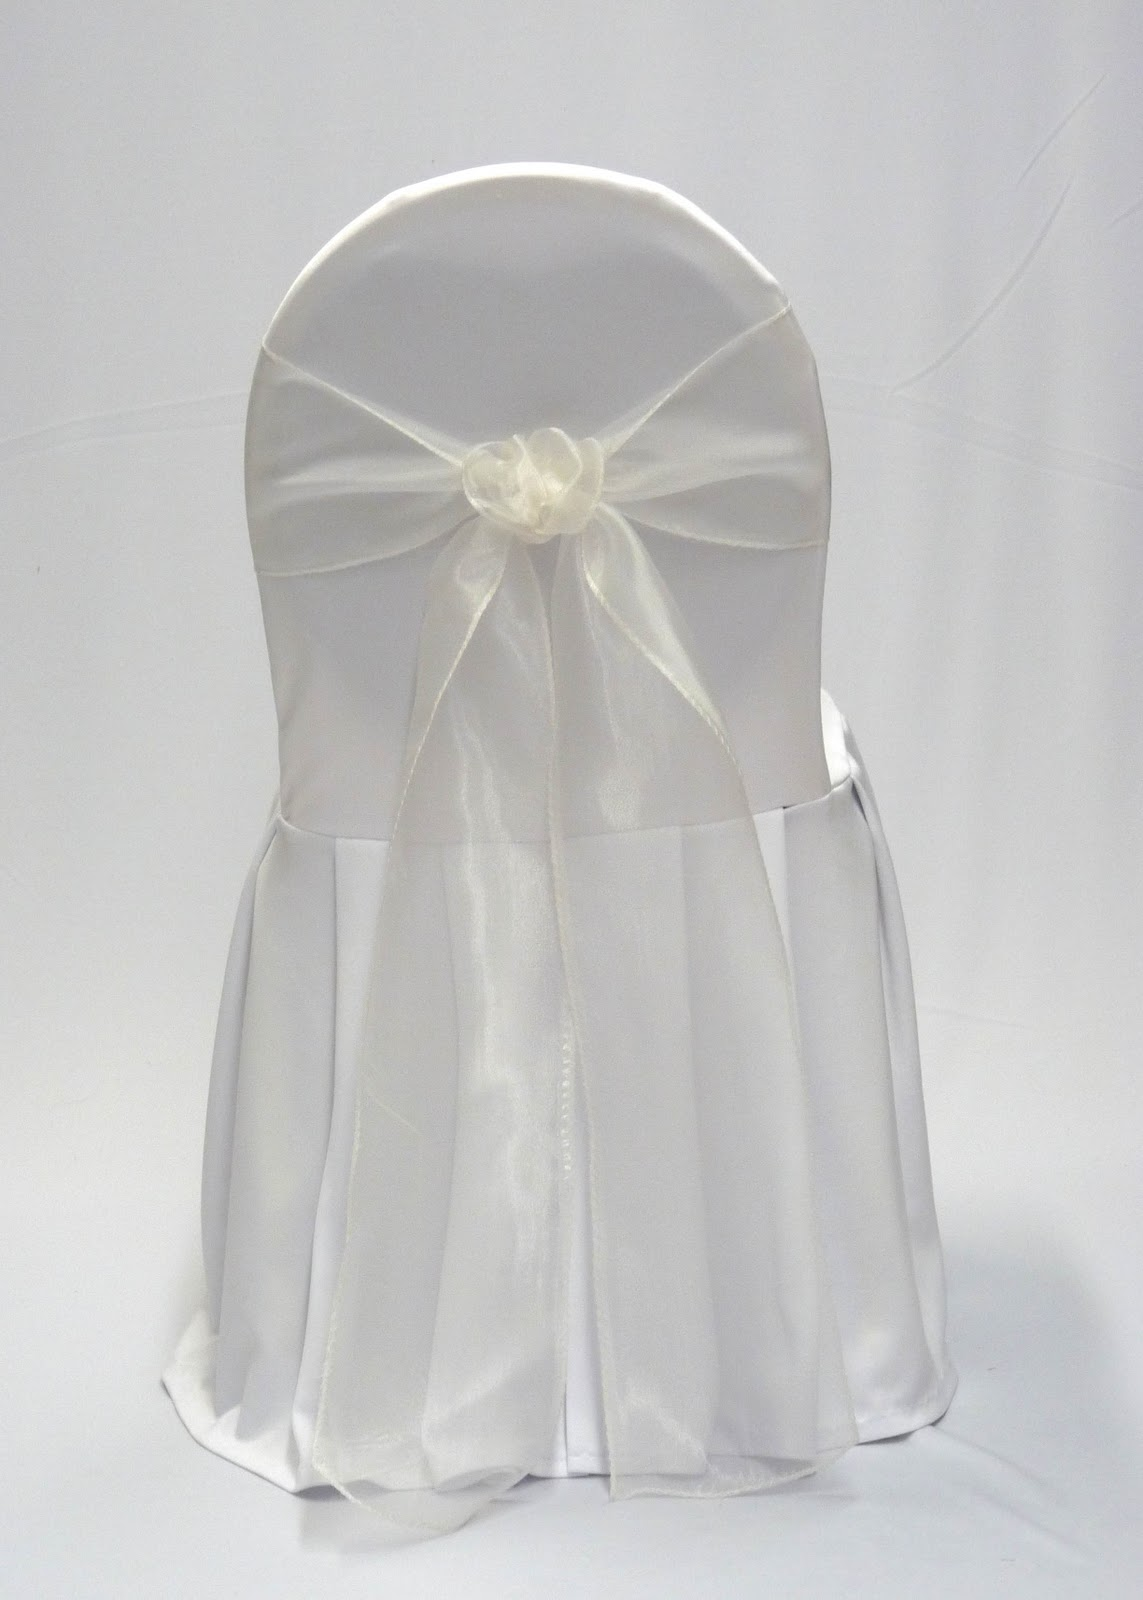 Chair Covers Rental Scarborough Tan Wedding Decor Rent Toronto Cover